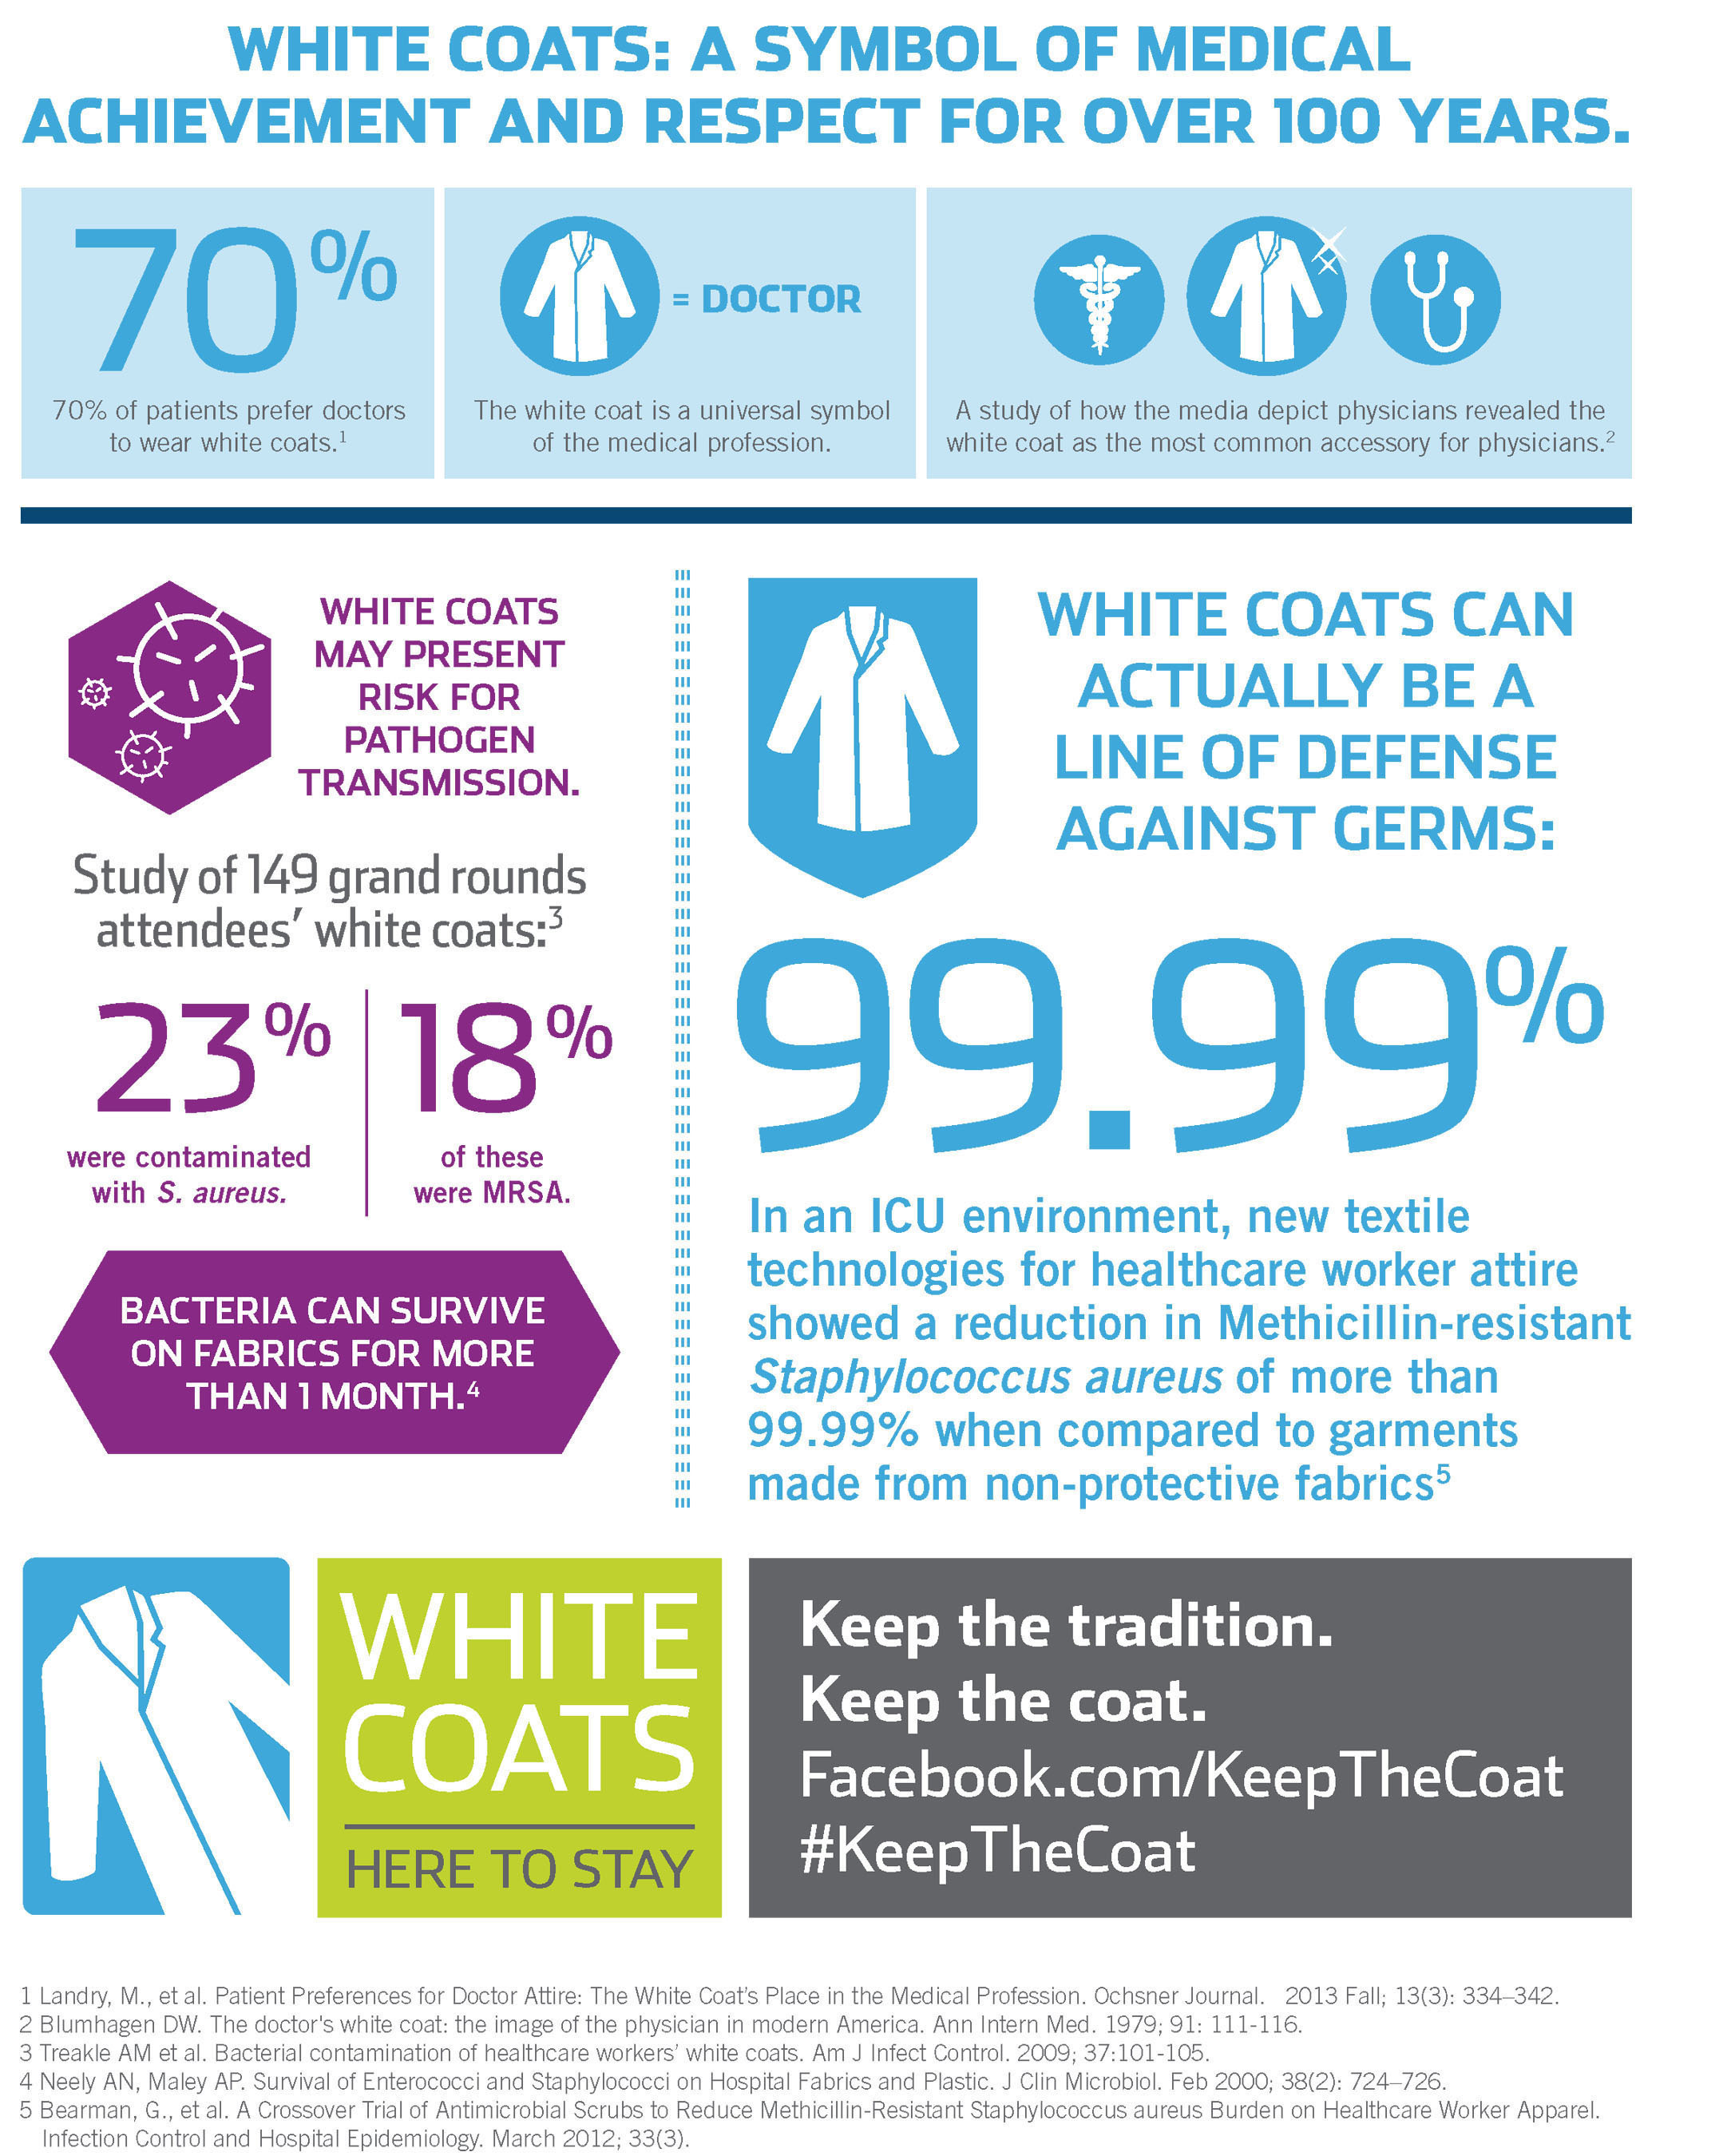 The role of the traditional white coat, a symbol of medical achievement for over 100 years, is being questioned  ...